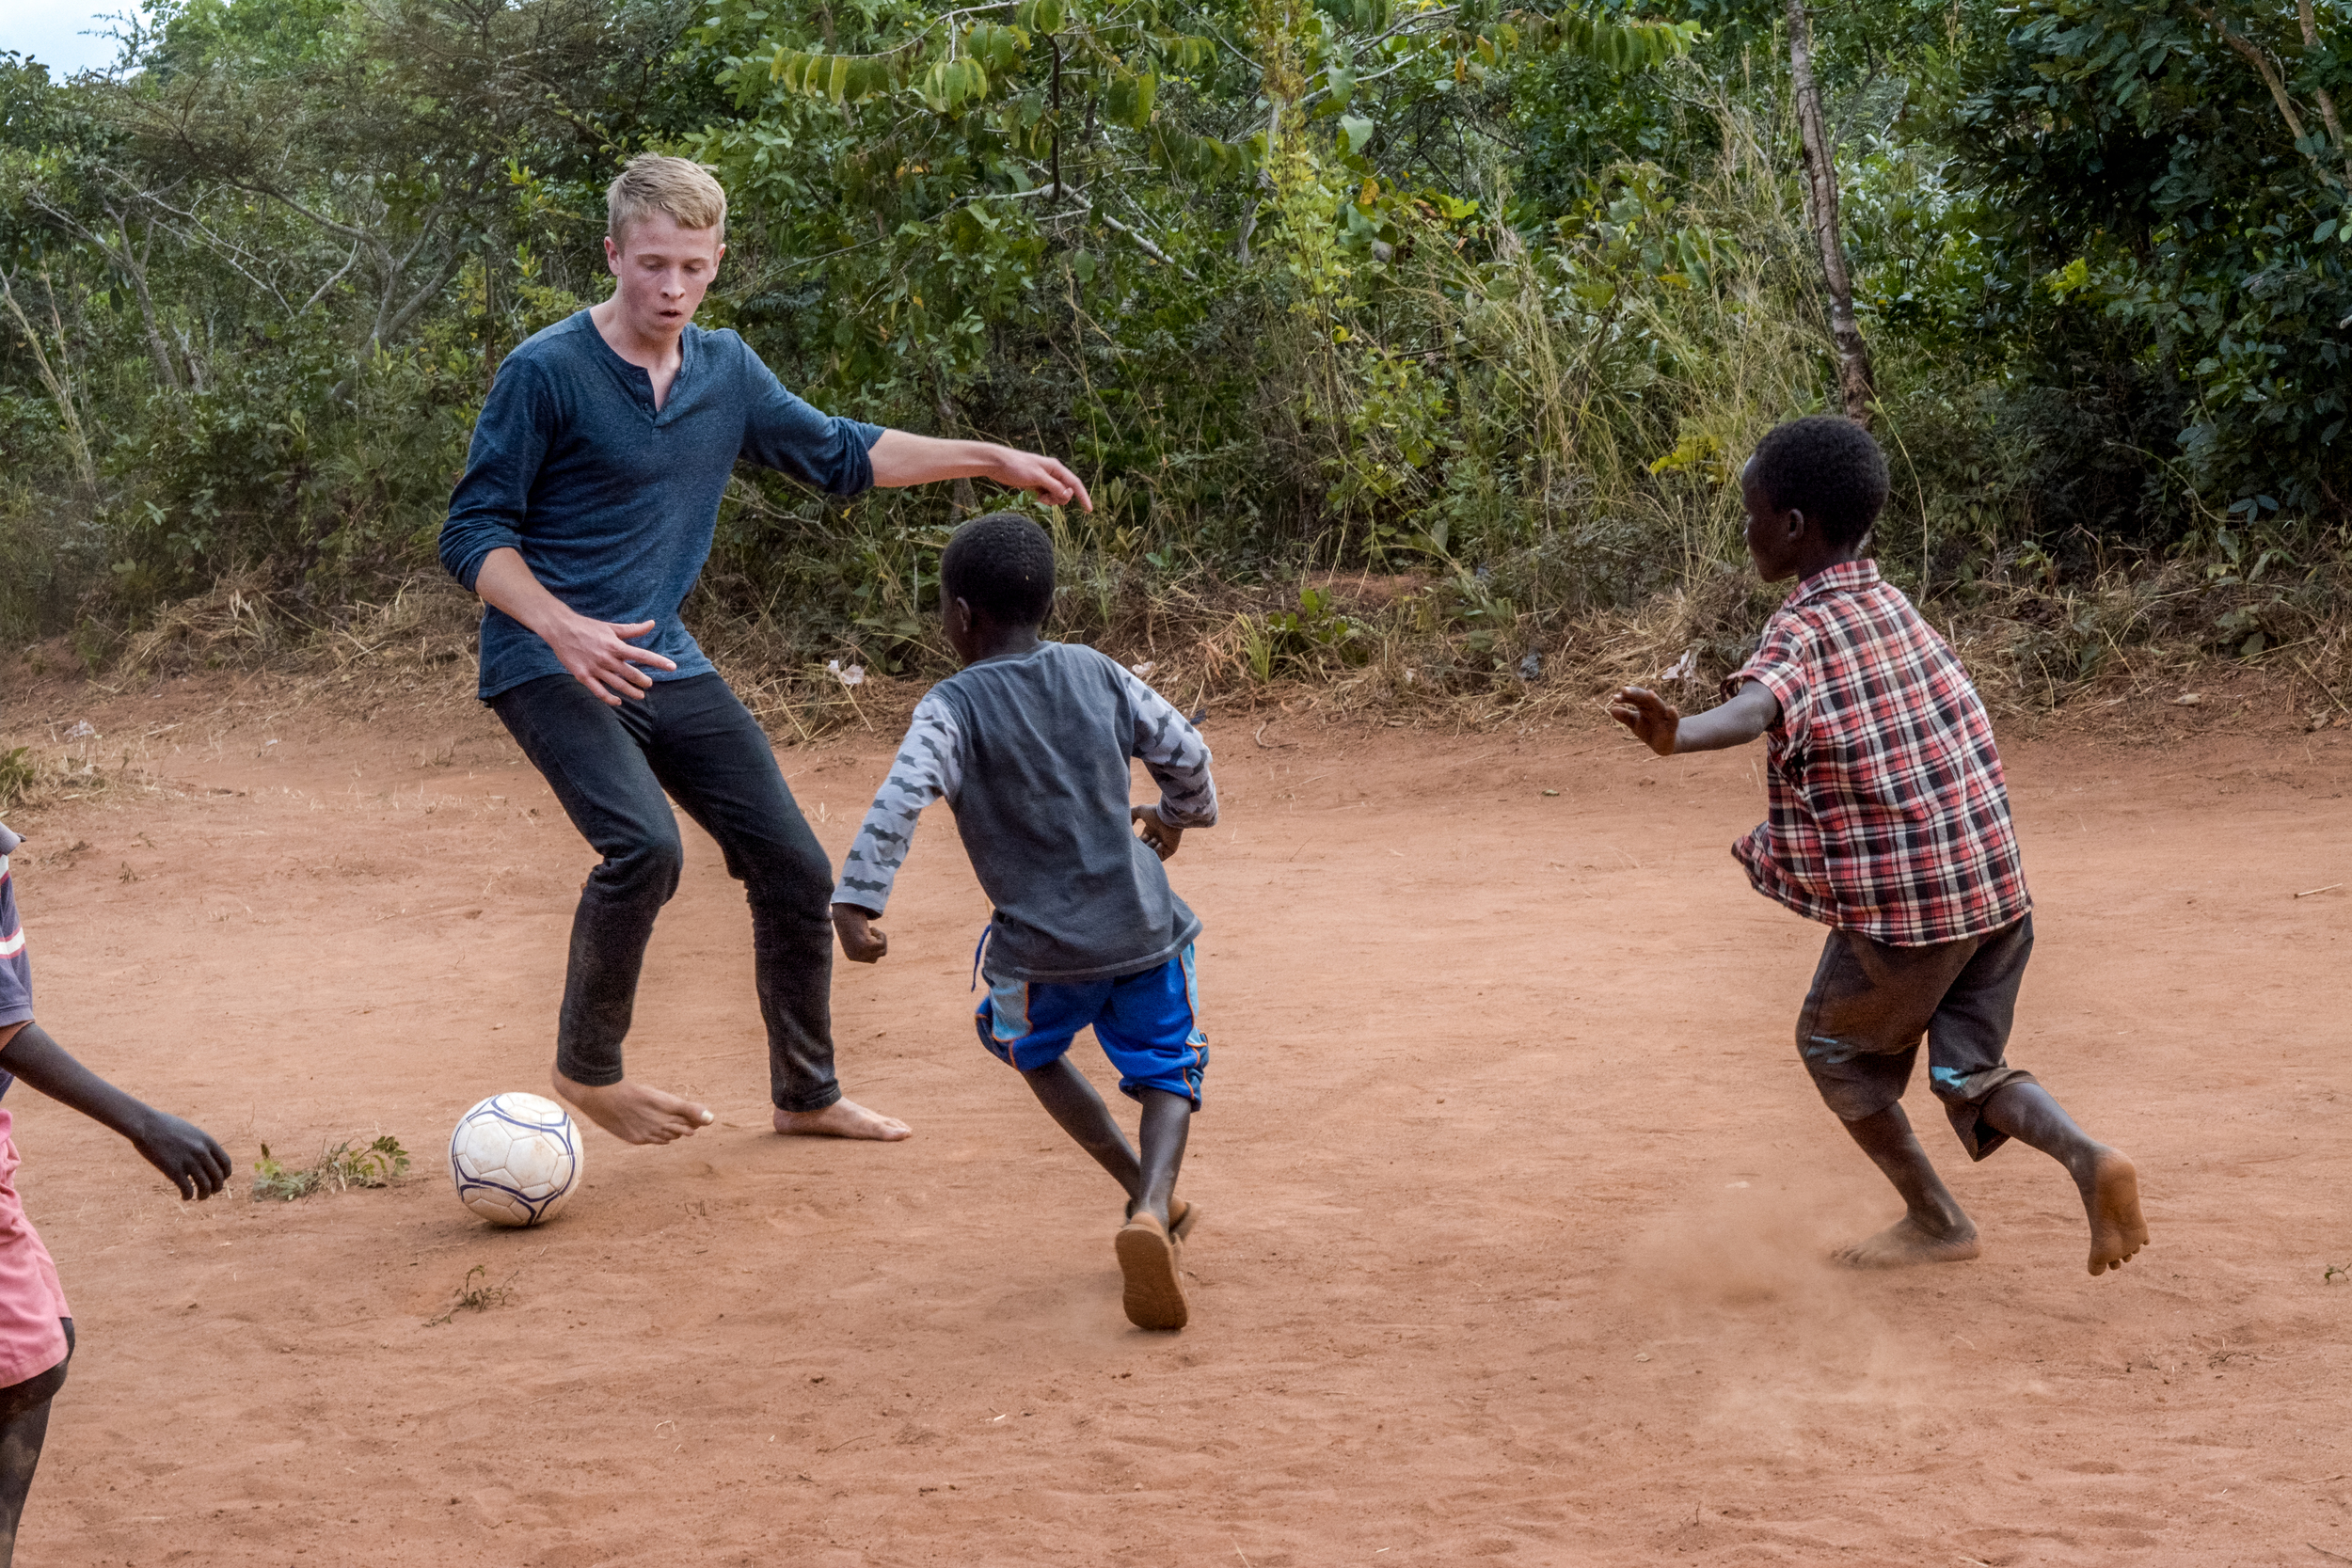 A photo of me playing soccer with the children in Viweme Village, Malawi.